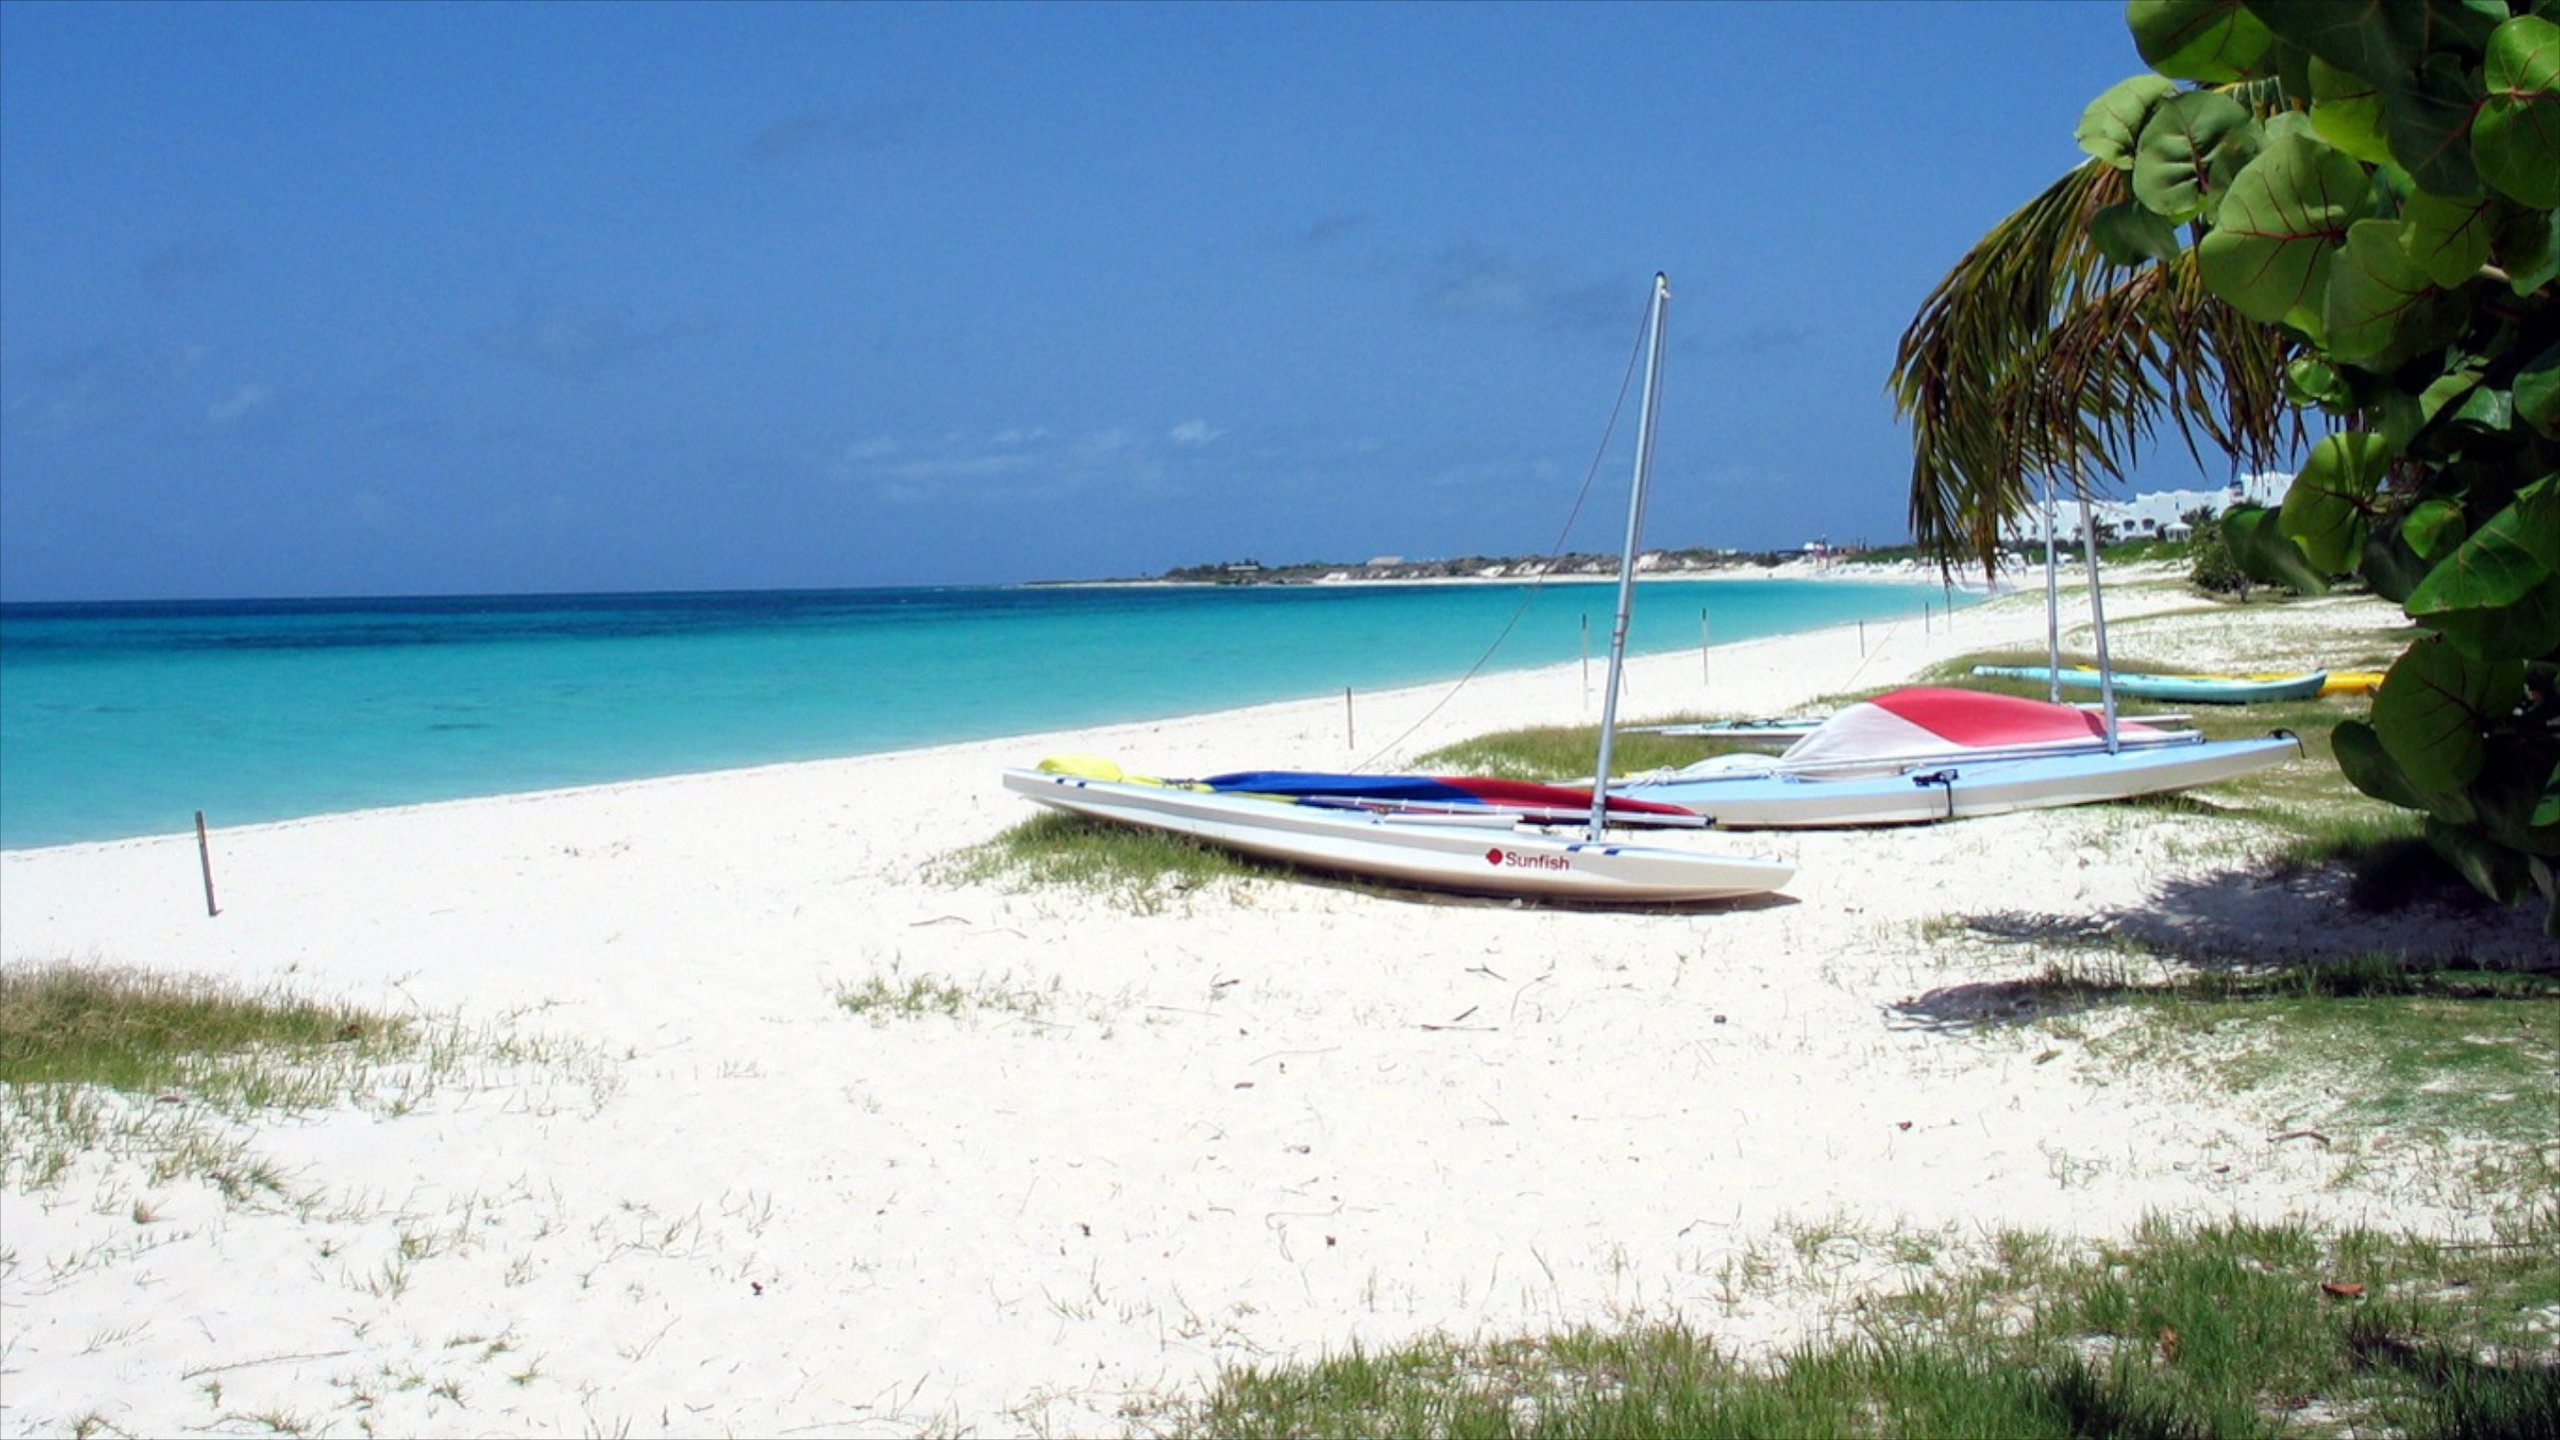 Top 10 Hotels in Anguilla (from $375/night)   Save More with ... Anguilla Resorts Map on anguilla on world map, anguilla antigua map, anguilla beaches map, anguilla guide map, the valley anguilla map, anguilla luxury resorts, shoal bay anguilla map, anguilla airport, netherlands antilles map, banff hotels map, anguilla beach map, sandy ground anguilla map, meads bay resort map, bali resort map, anguilla beach party, greater antilles islands map, atlantis resort map, anguilla west indies map, anguilla island map, viceroy anguilla map,